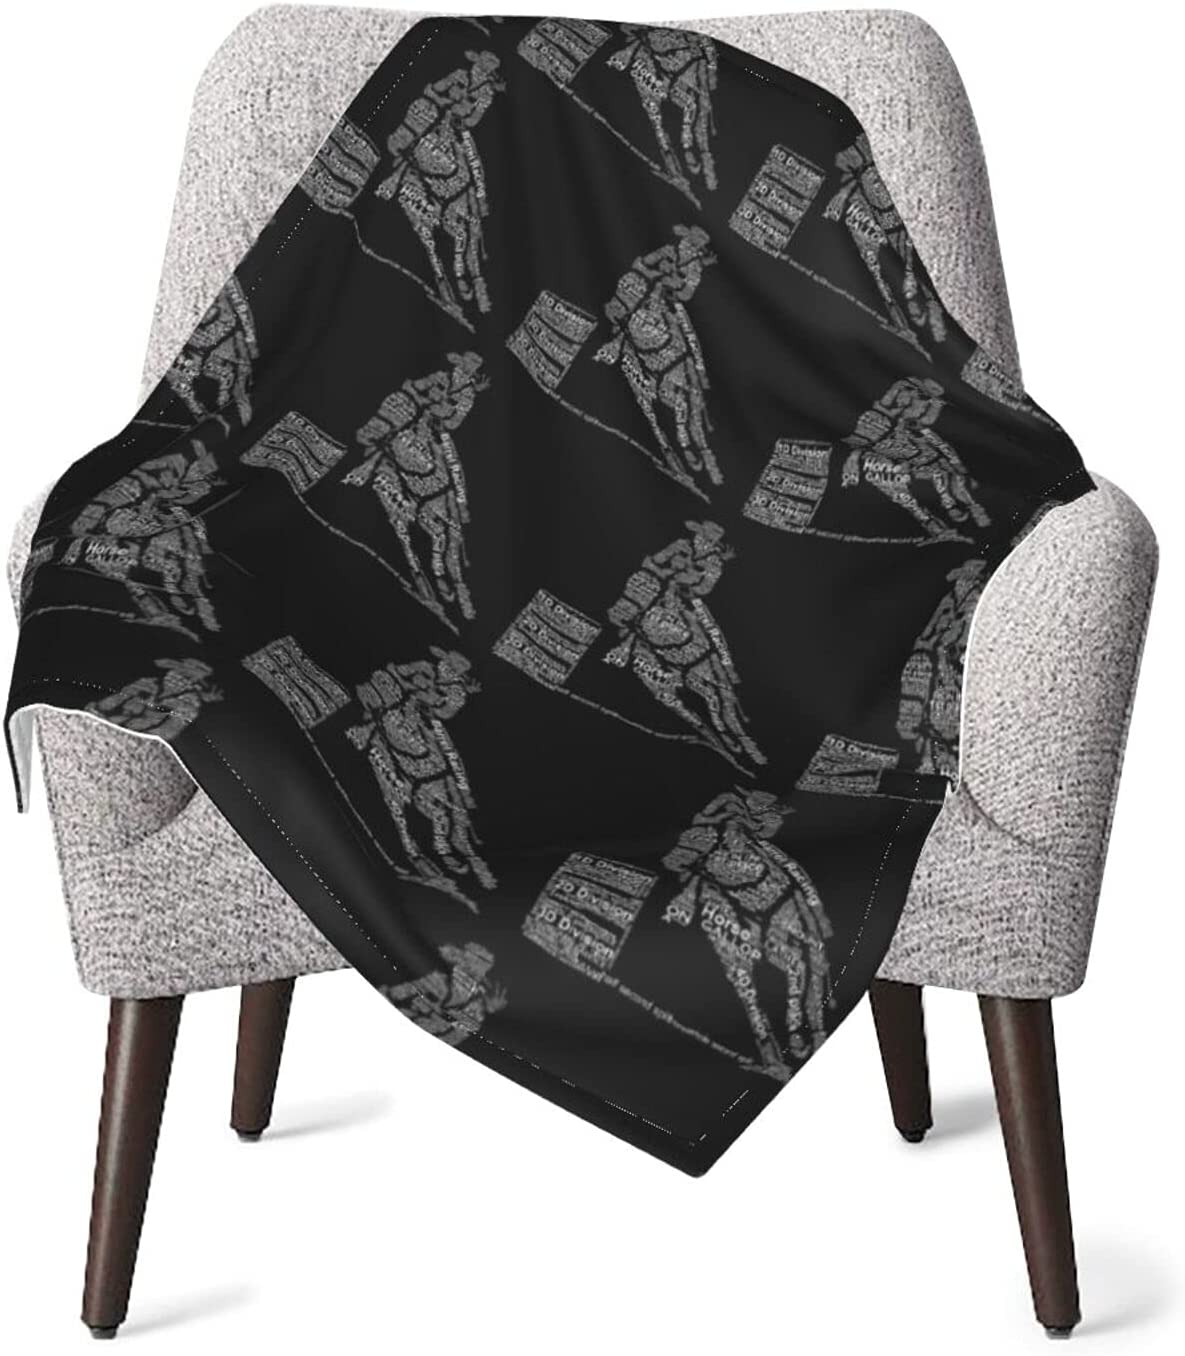 JZDACH Max 50% OFF Unisex Baby Receiving Blankets Typography Barrel Brand Cheap Sale Venue Racing